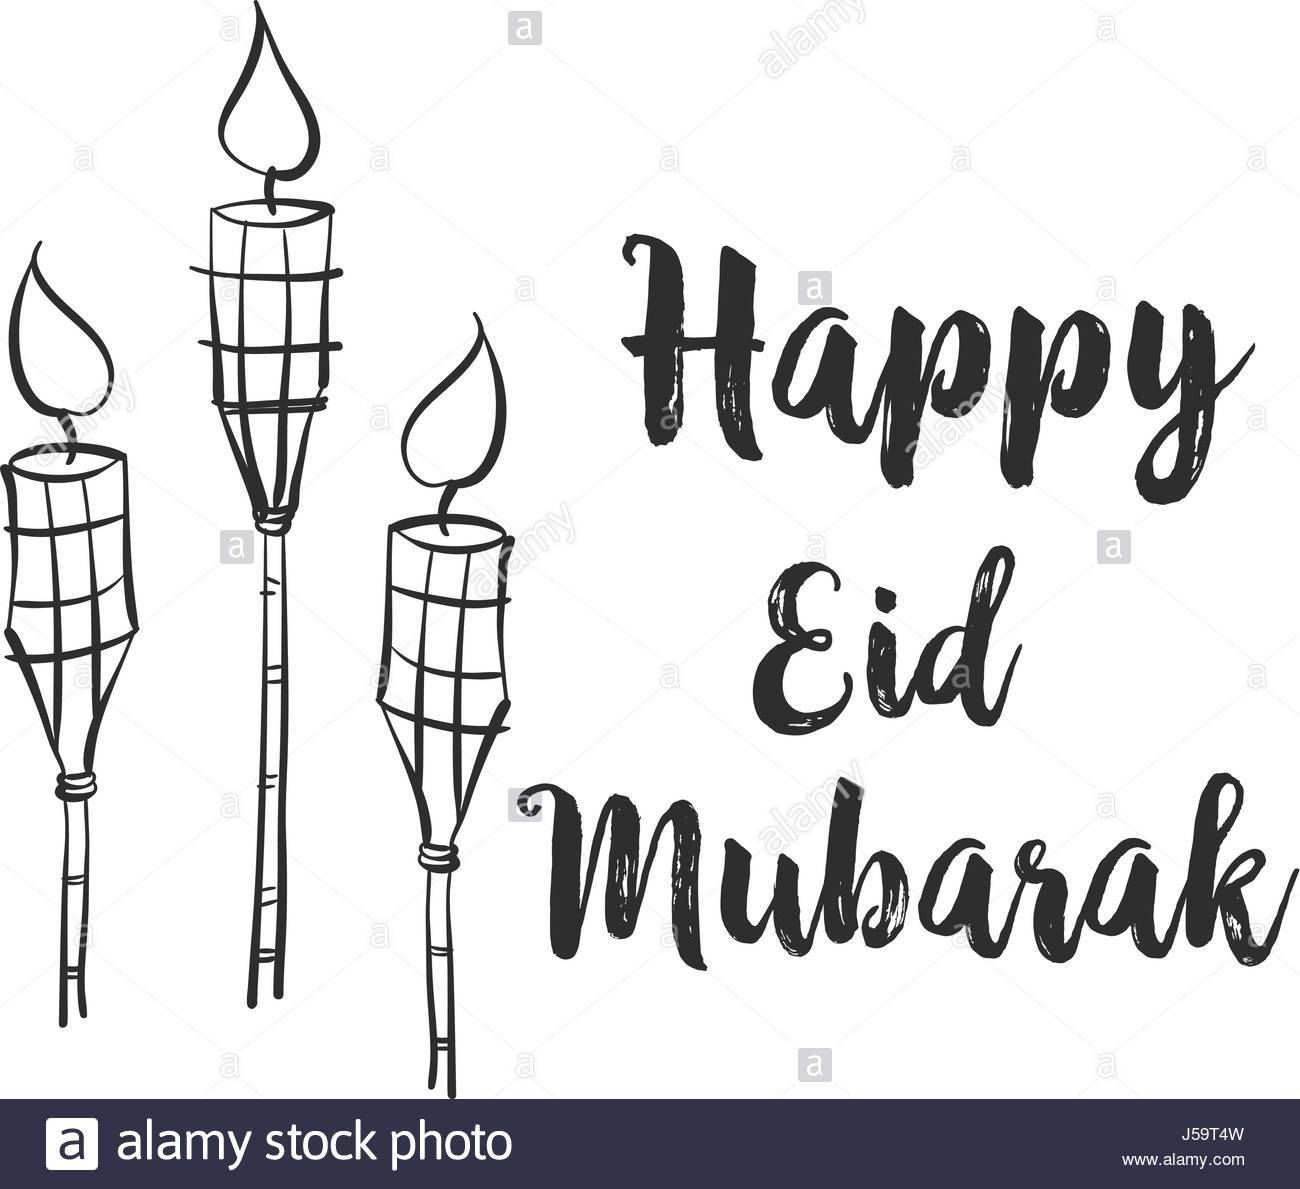 Eid clipart black and white free stock Eid clipart black and white 9 » Clipart Portal free stock